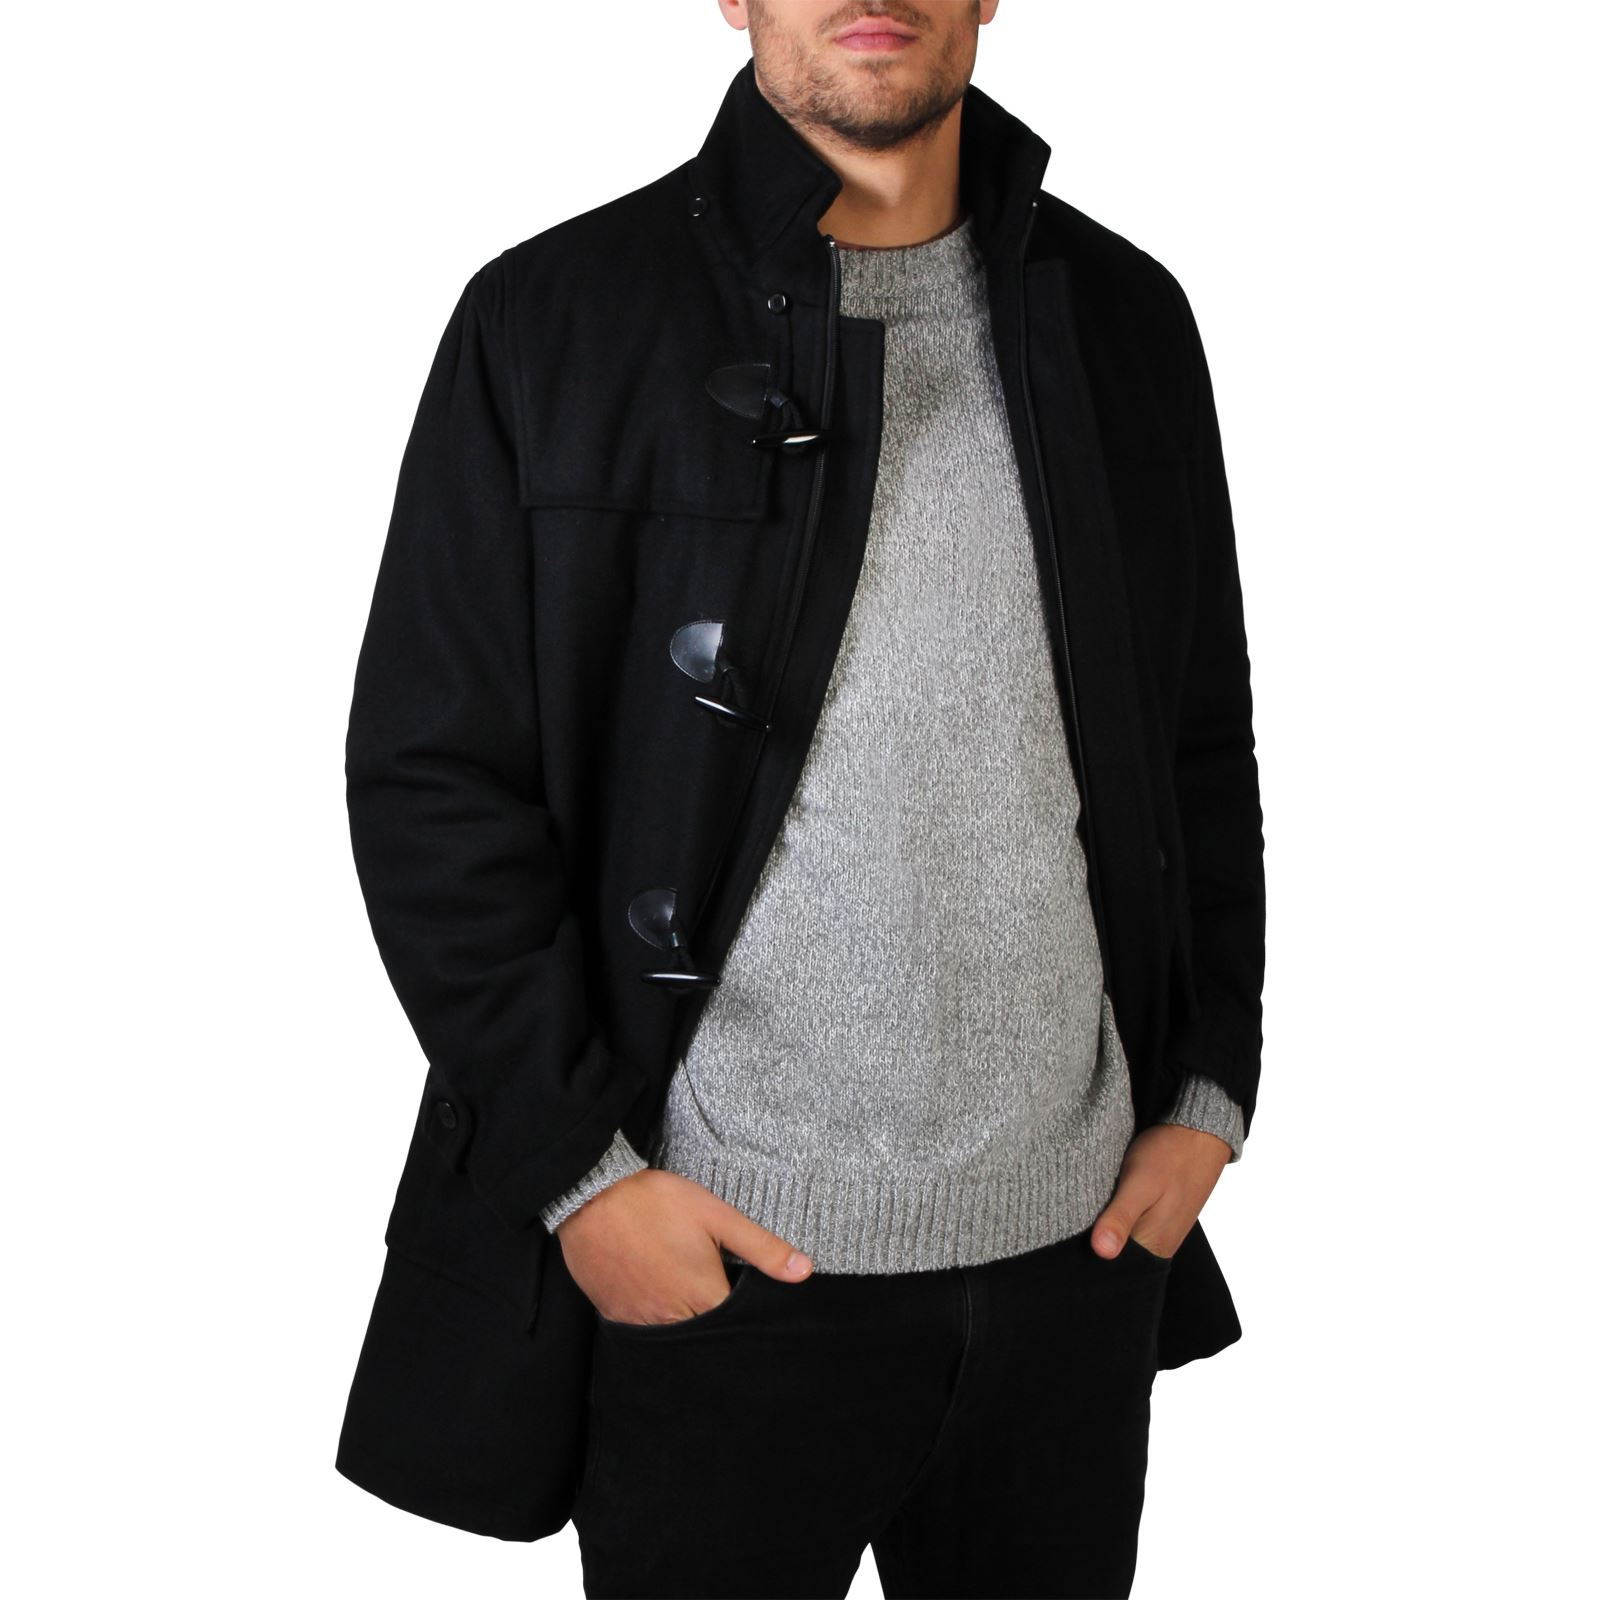 Discover our stylish men's duffle coats at ASOS. Toggles, wool & a hood, all you need this season are warm winter duffle coats from our on trend range! Lacoste L!VE hooded duffle coat in black. $ Selected Homme recycled wool duffle coat with teddy lining. $ Jack & Jones Vintage Duffle Coat With Fleece Back Wool.